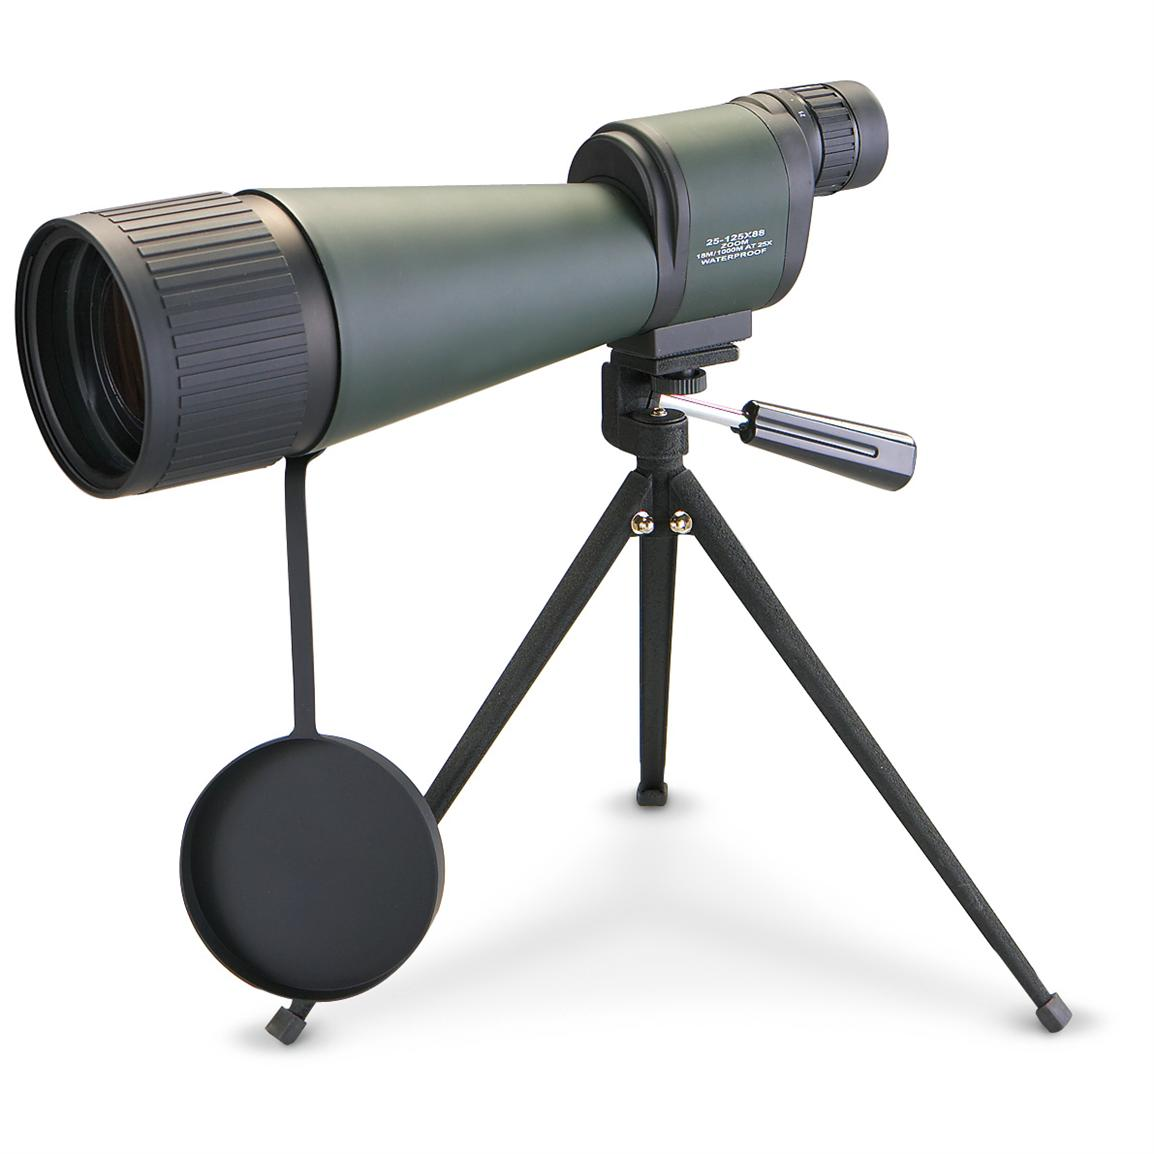 Barska® 25-125x88 mm Waterproof Spotting Scope